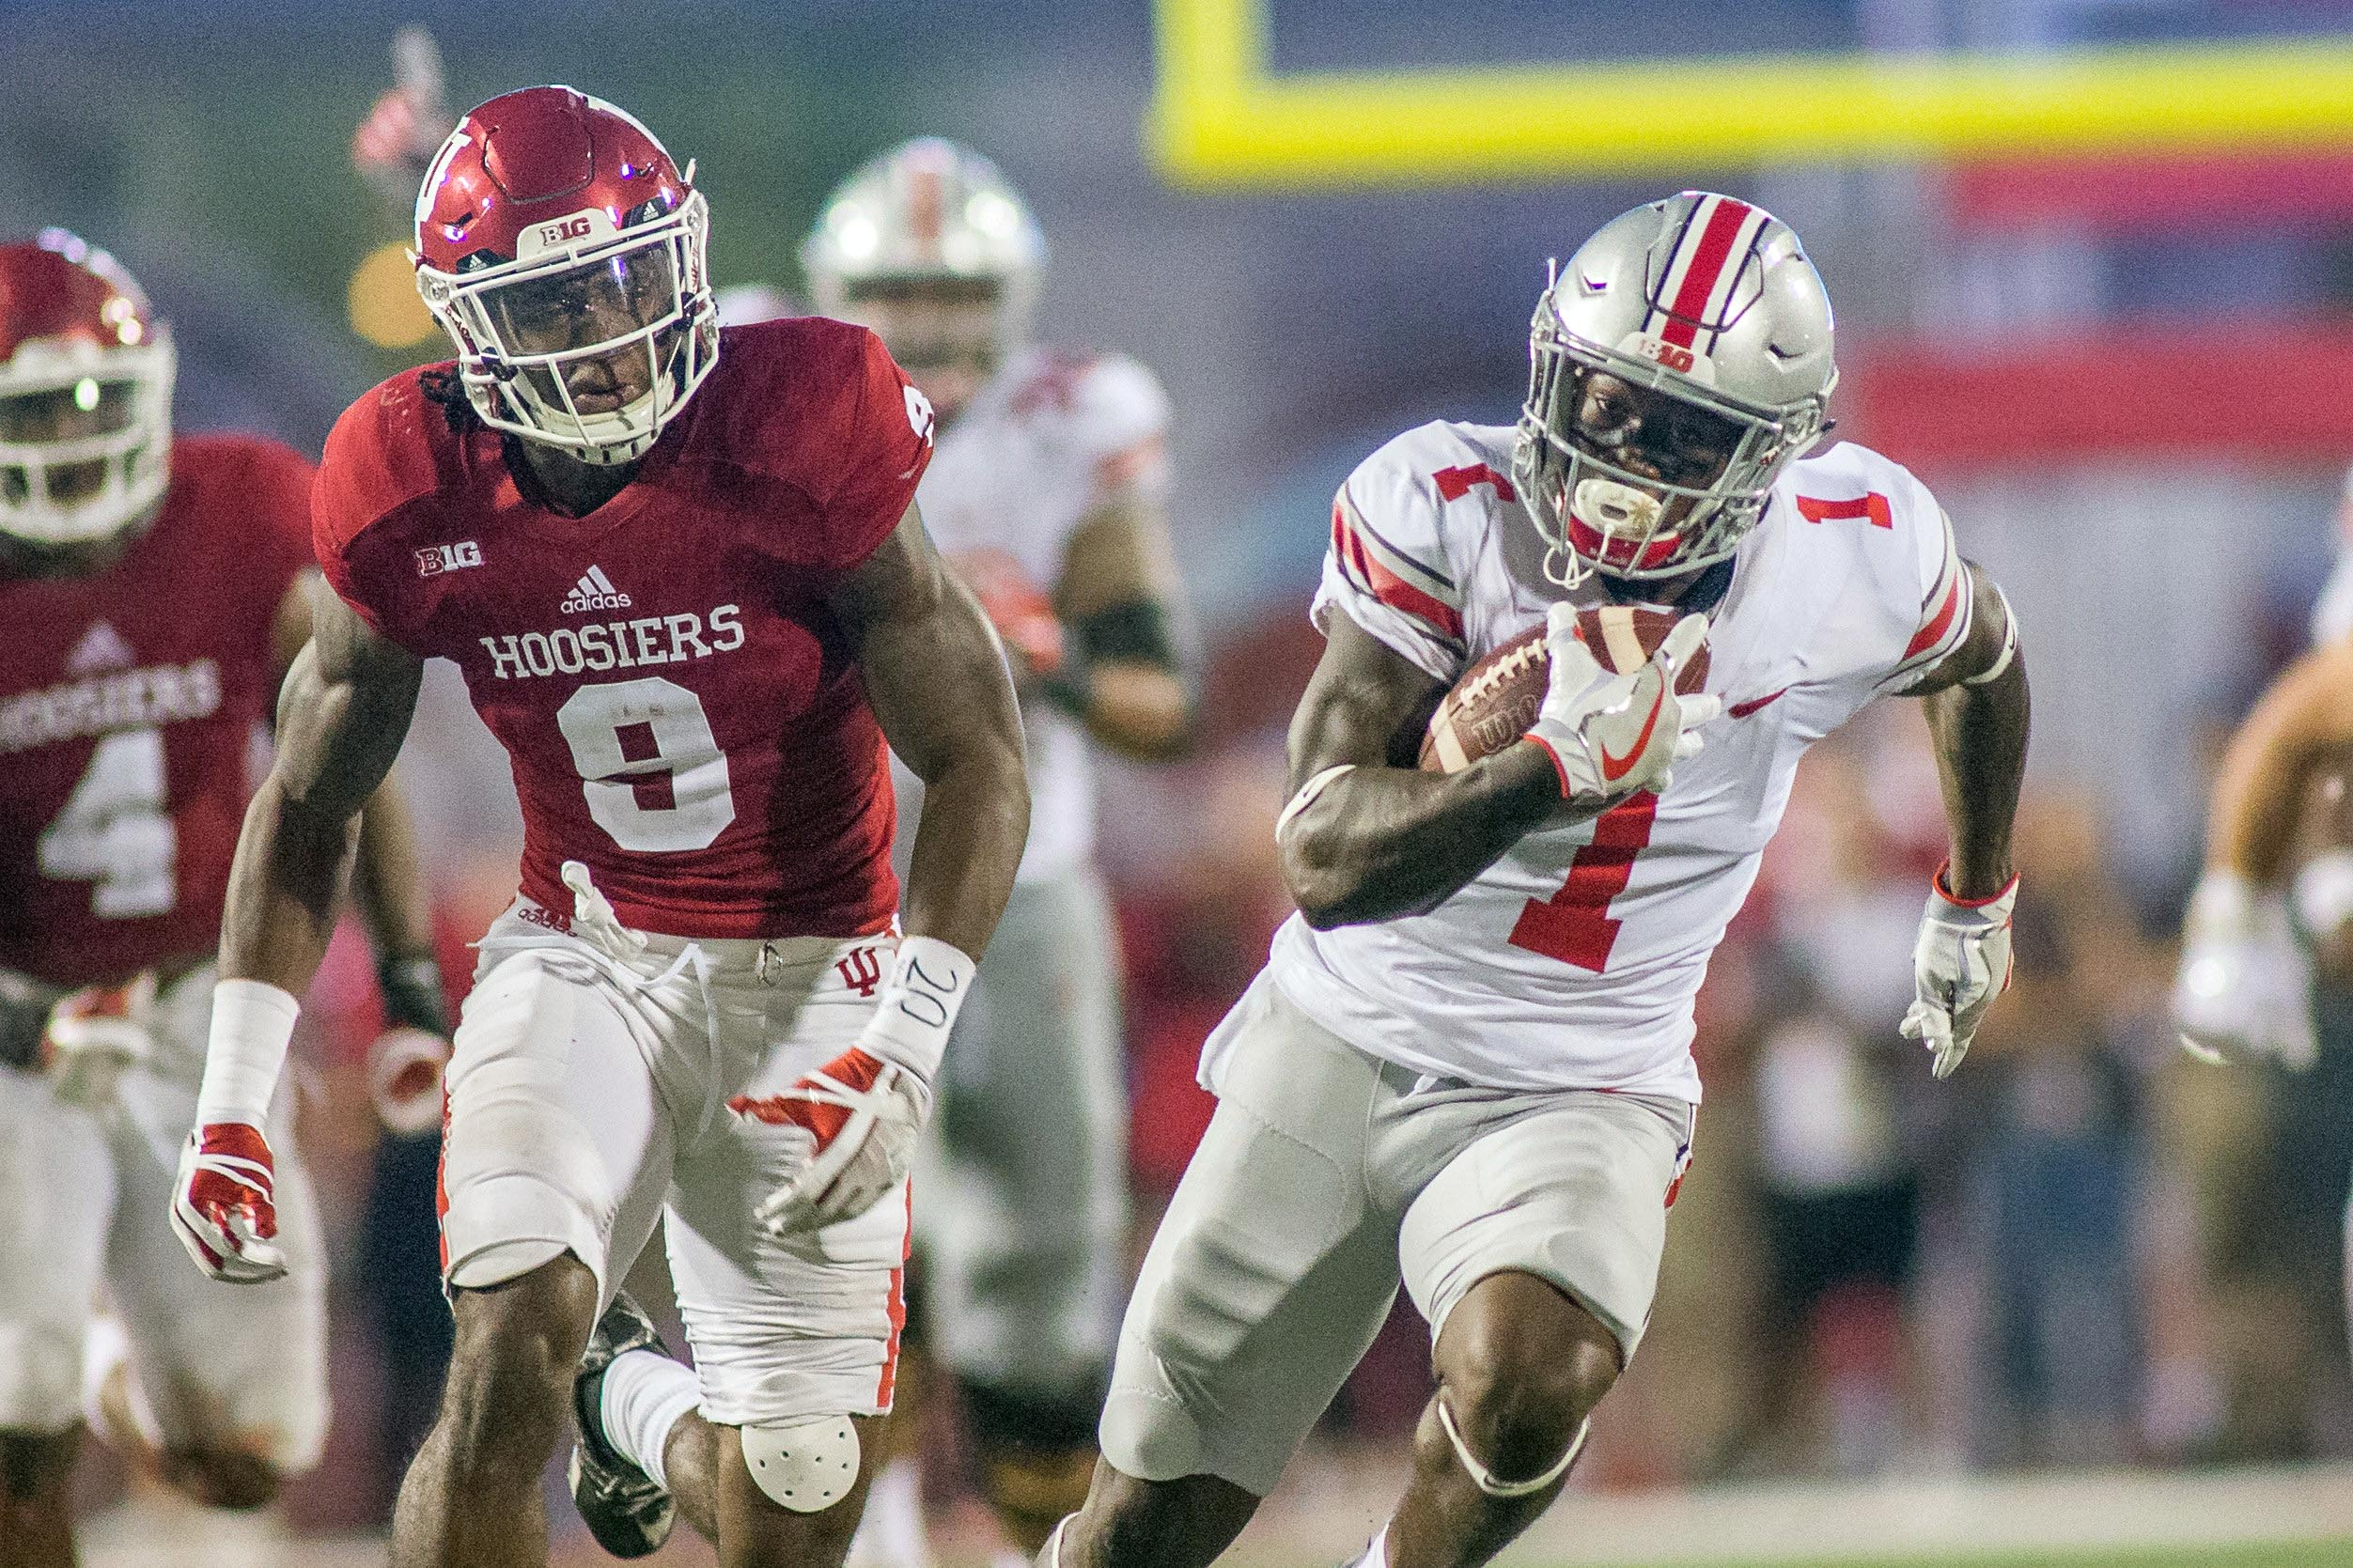 Ohio State Buckeyes wide receiver Johnnie Dixon (1) runs with the ball while Indiana Hoosiers defensive back Jonathan Crawford (9) defends in the second half of the game at Memorial Stadium. (Trevor Ruszkowski-USA TODAY Sports)